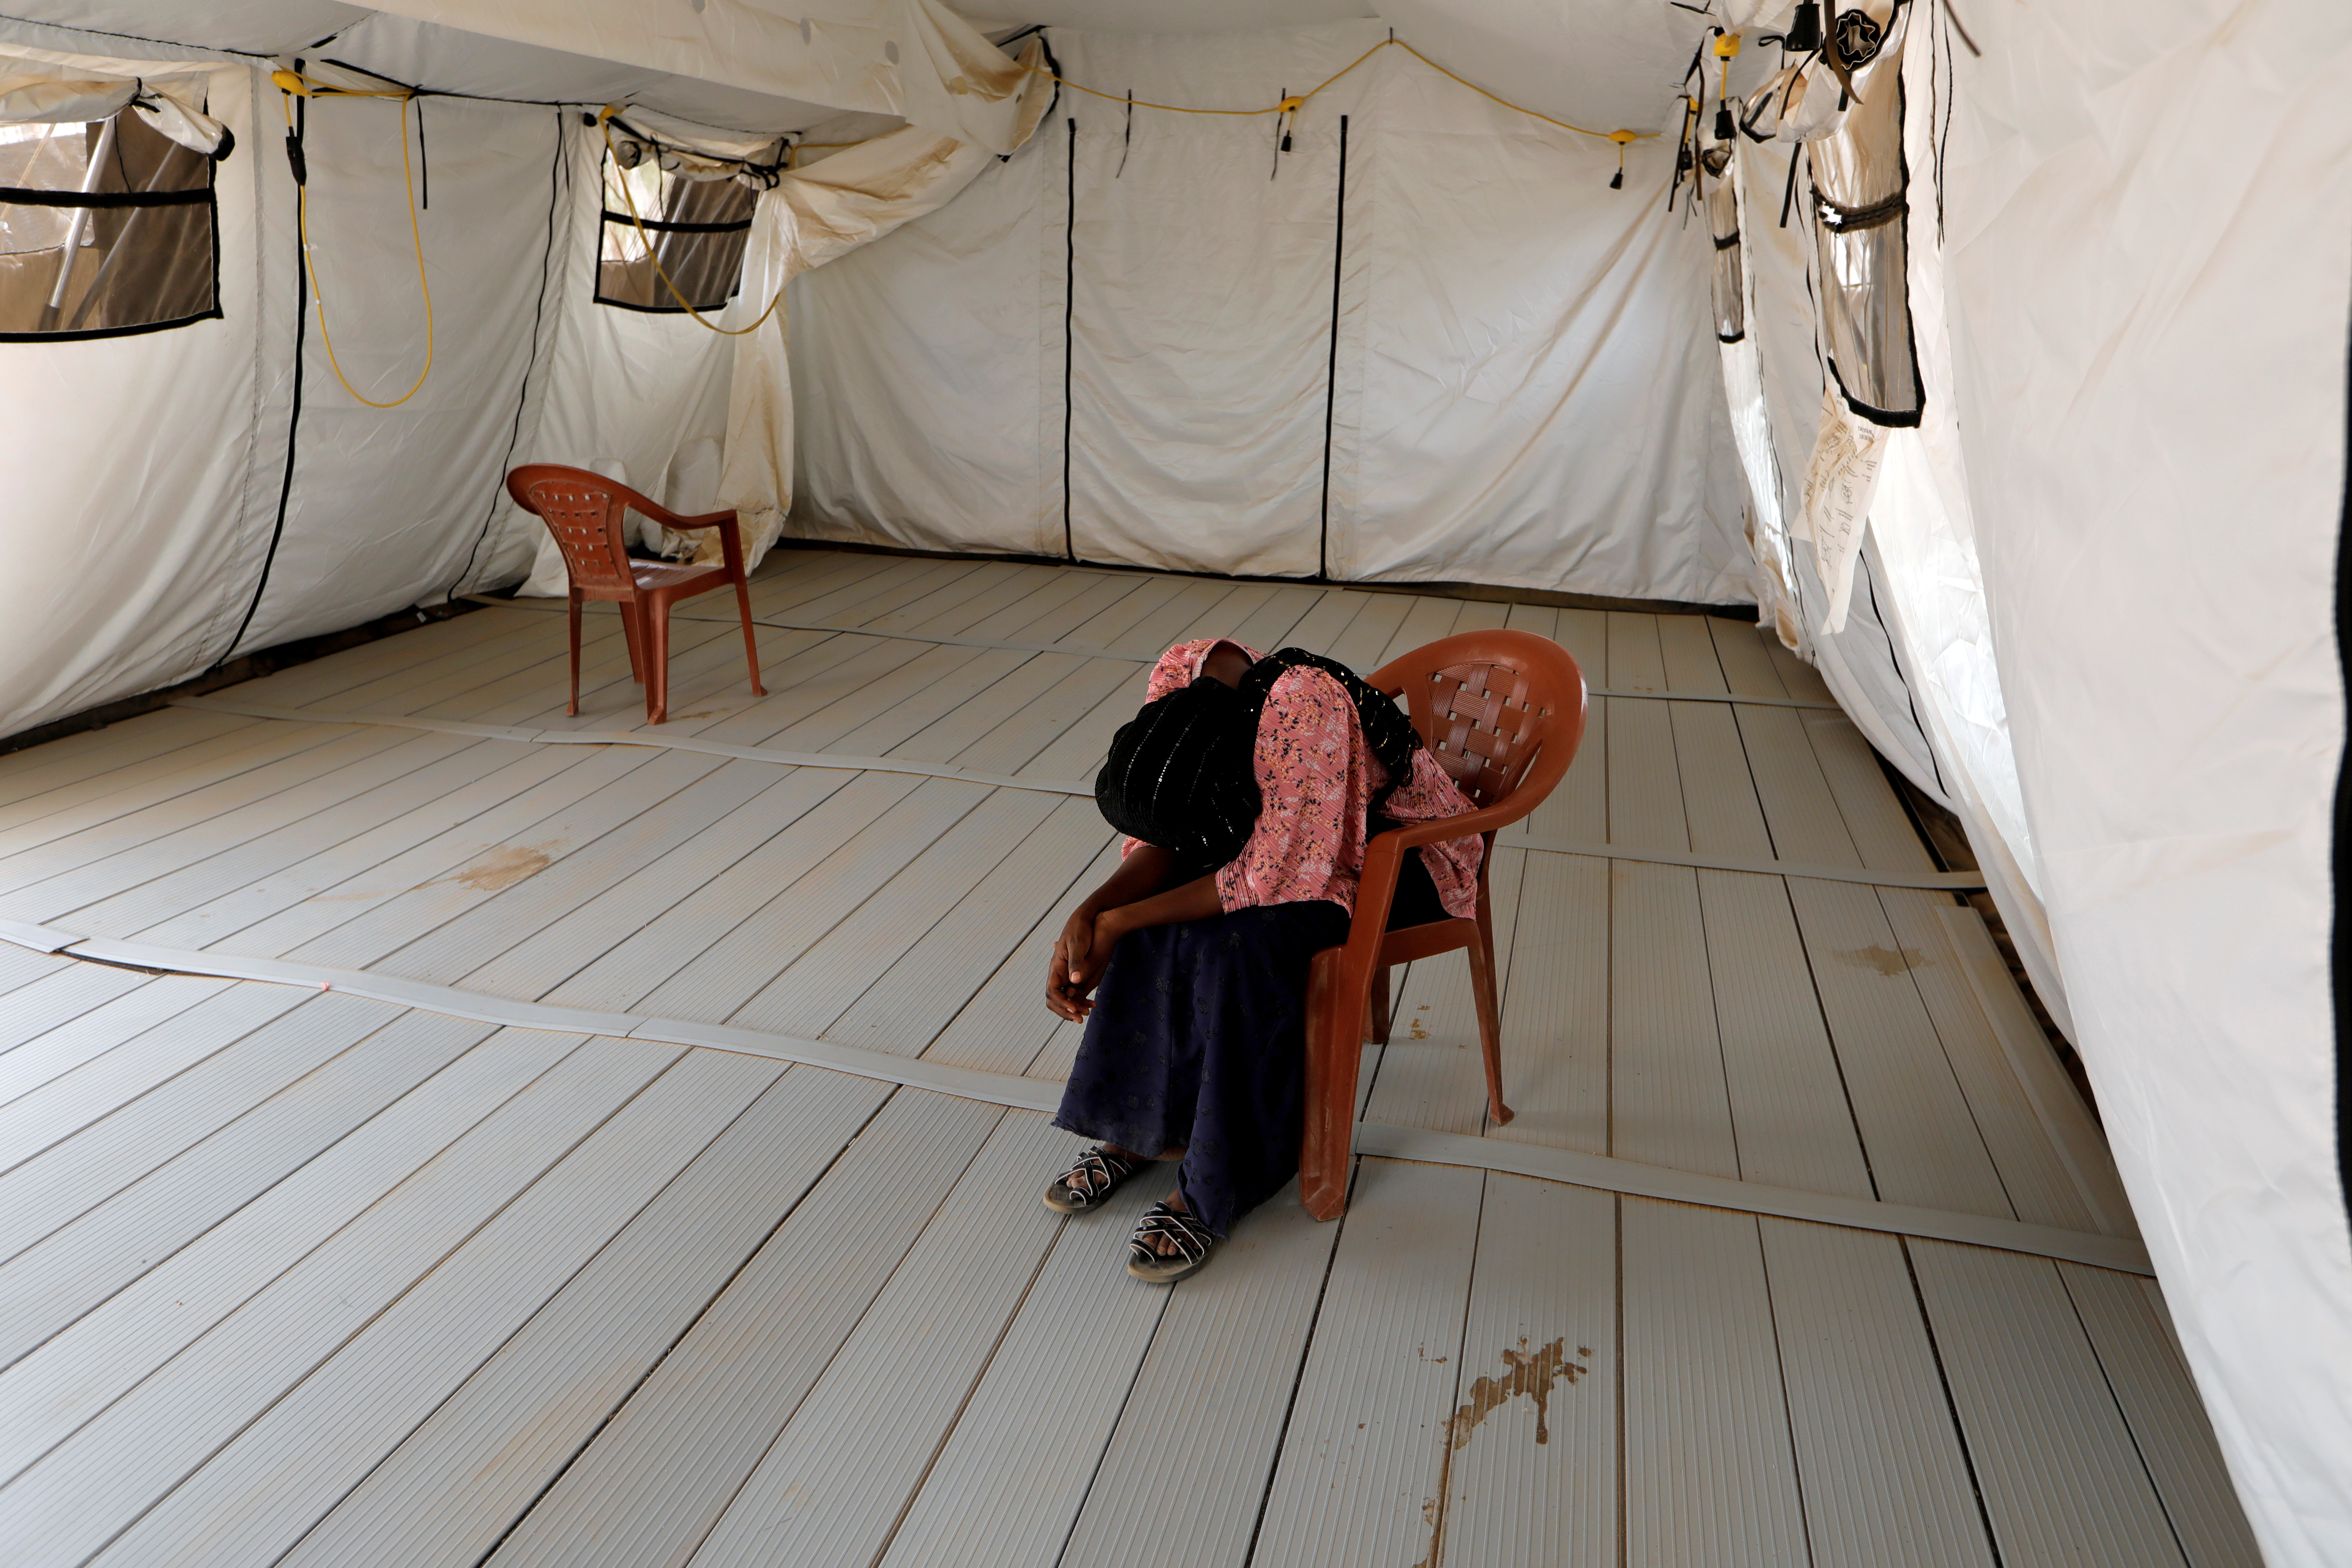 A local resident waits to be examined after she was isolated due to the symptoms of the coronavirus disease (COVID-19), inside an isolation tent for suspected cases at the army field hospital in Touba, Senegal May 1, 2020.